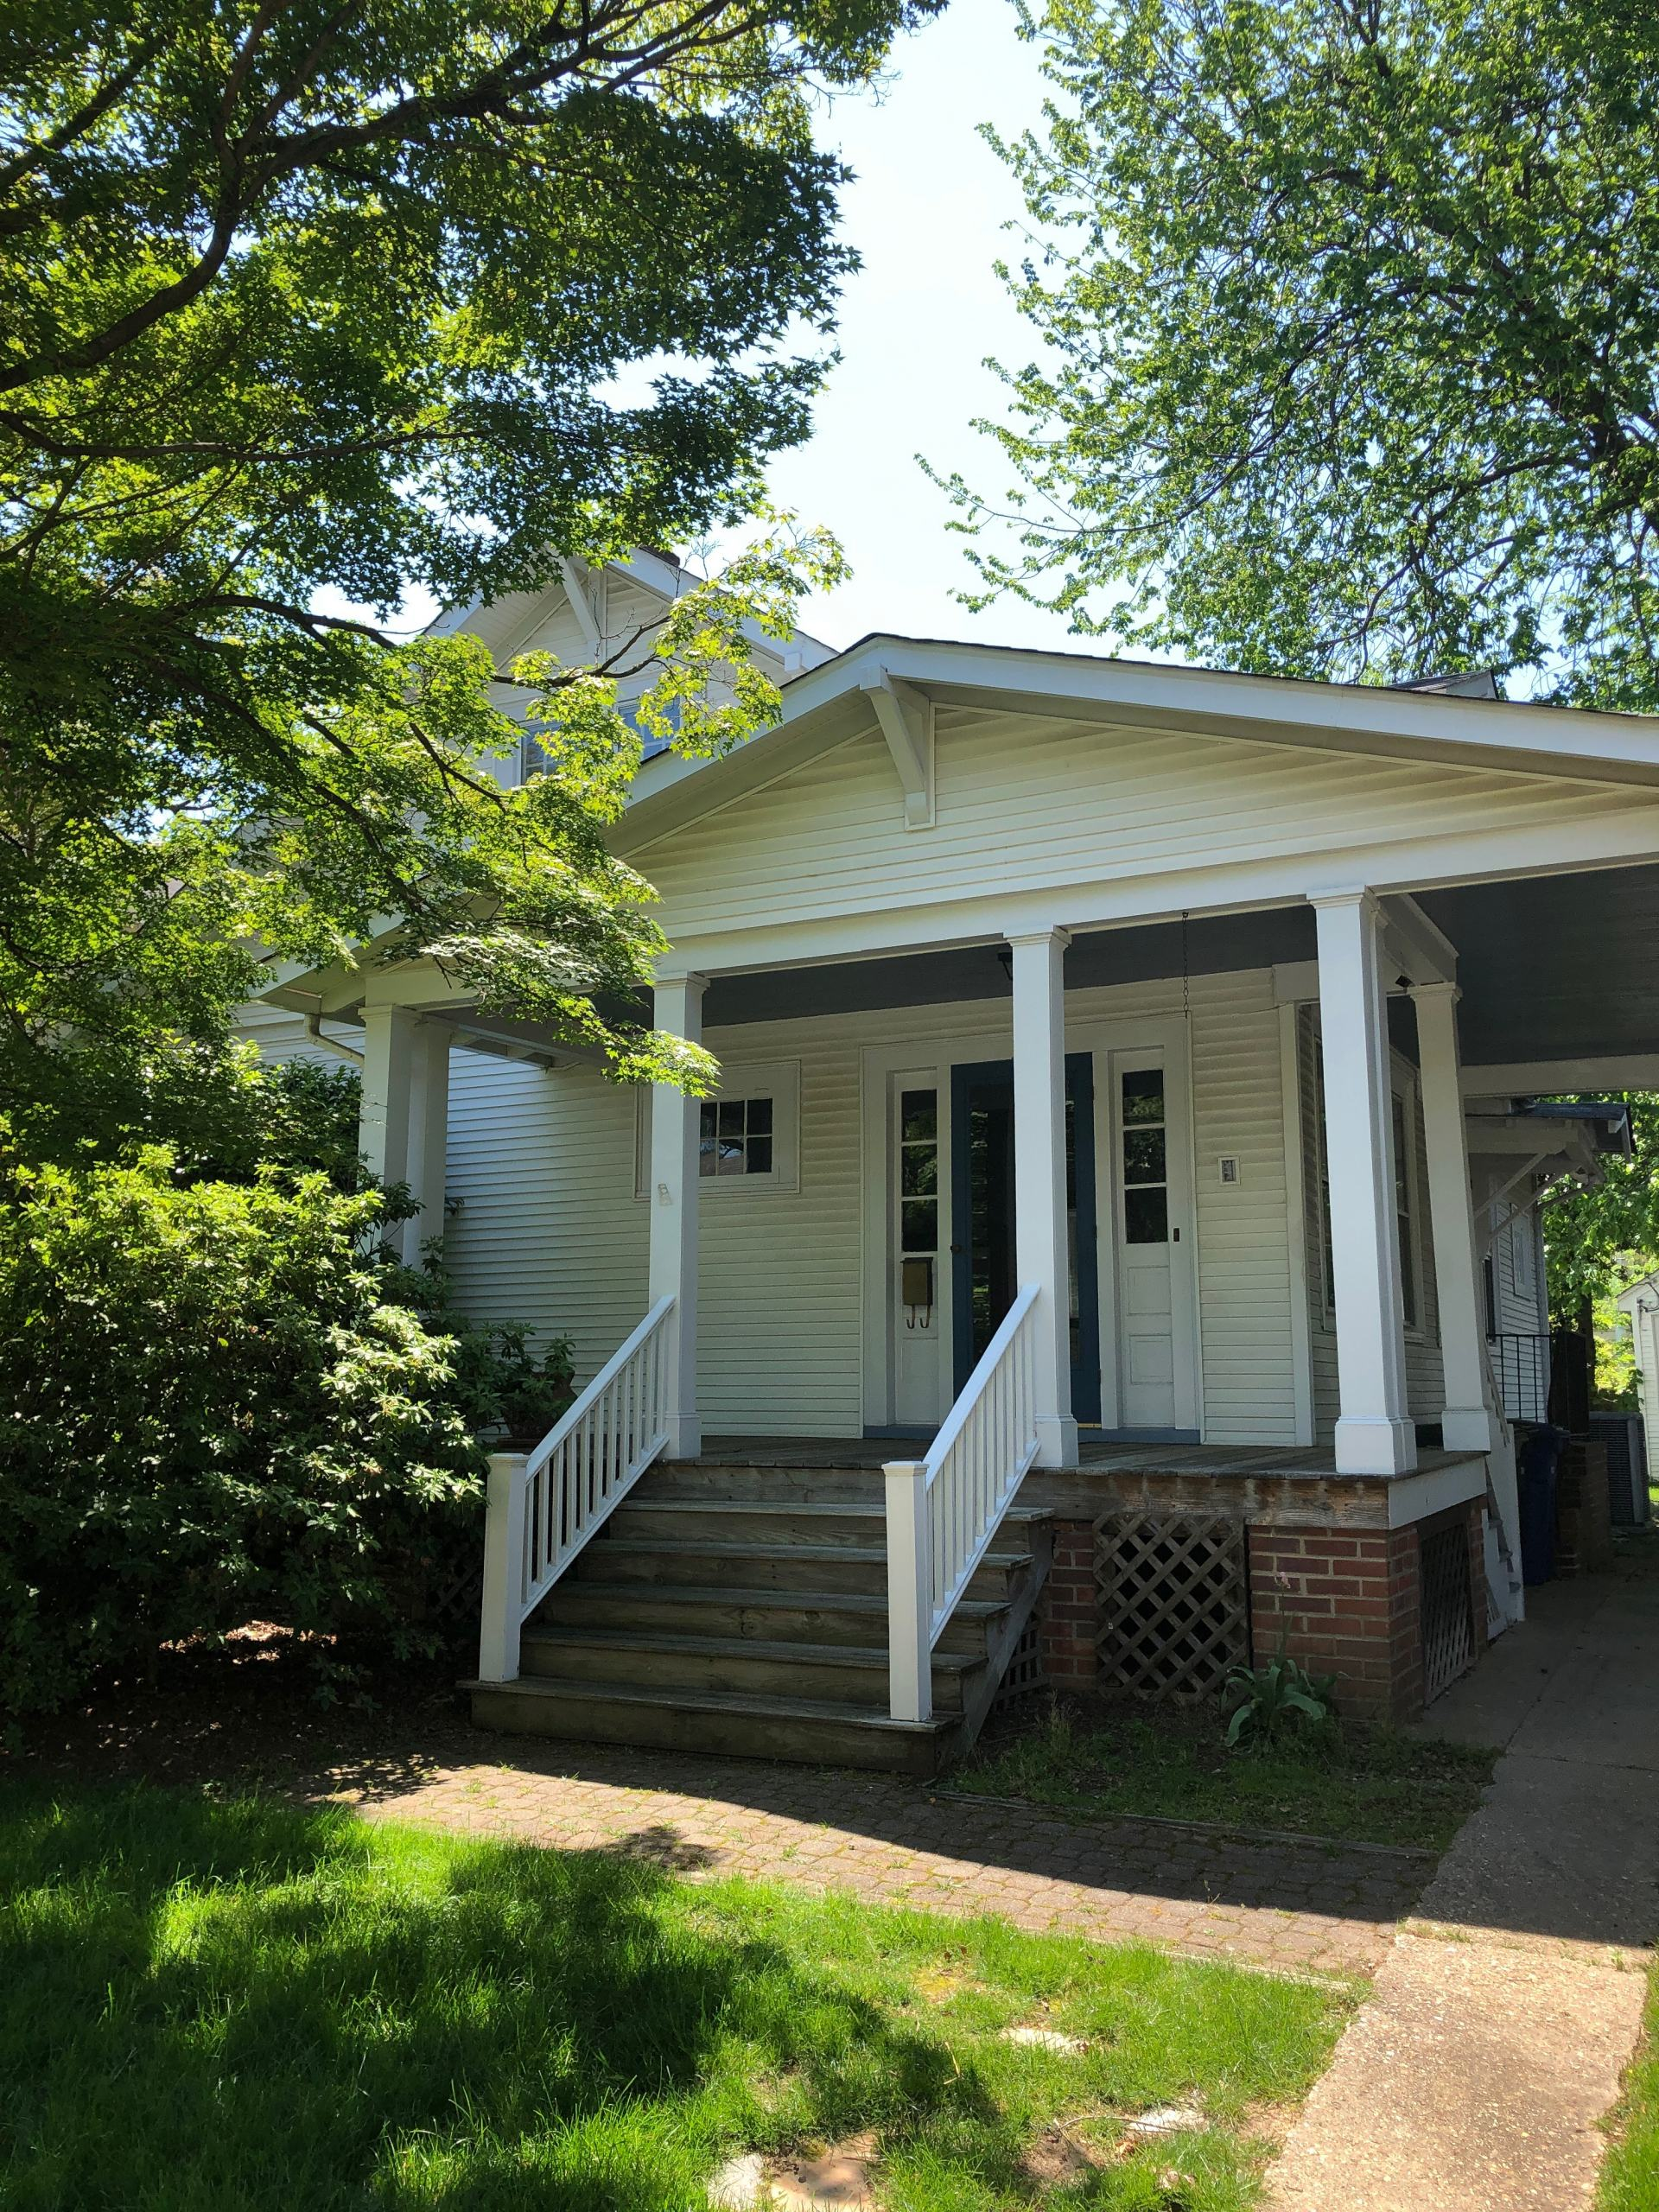 craftsman bungalow with carport